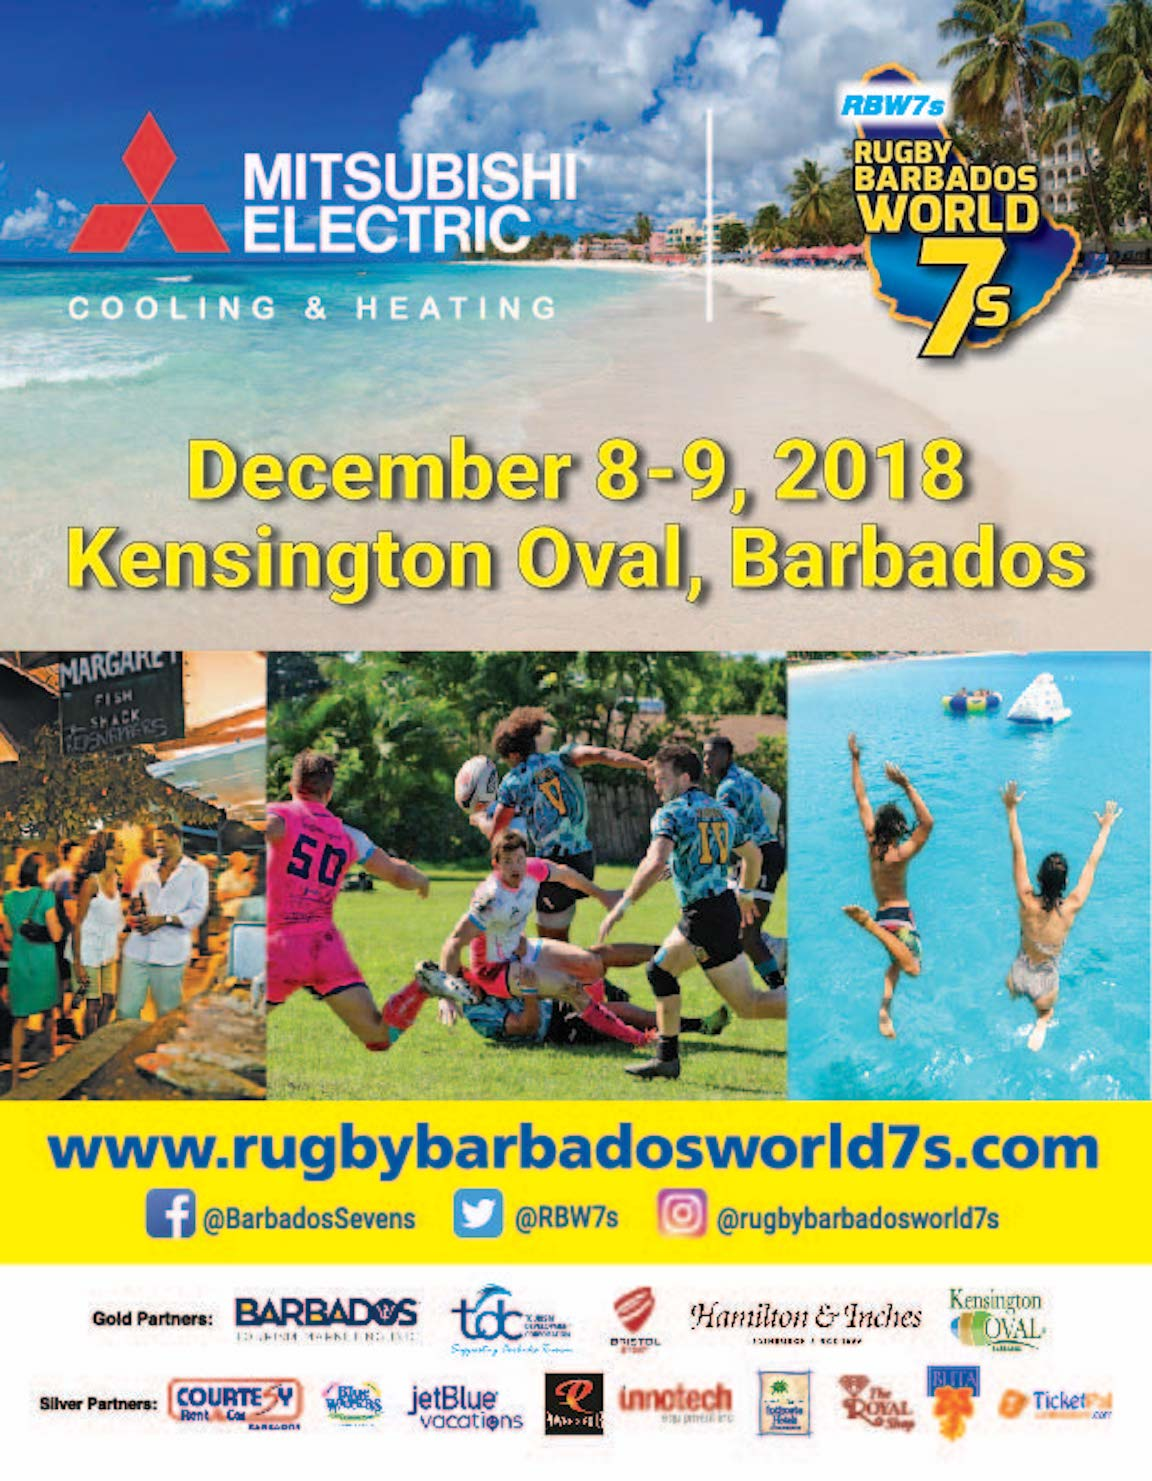 Mitsubishi Electric Rugby Barbados World 7s - 3Ws Stand - General Admission - Day 2